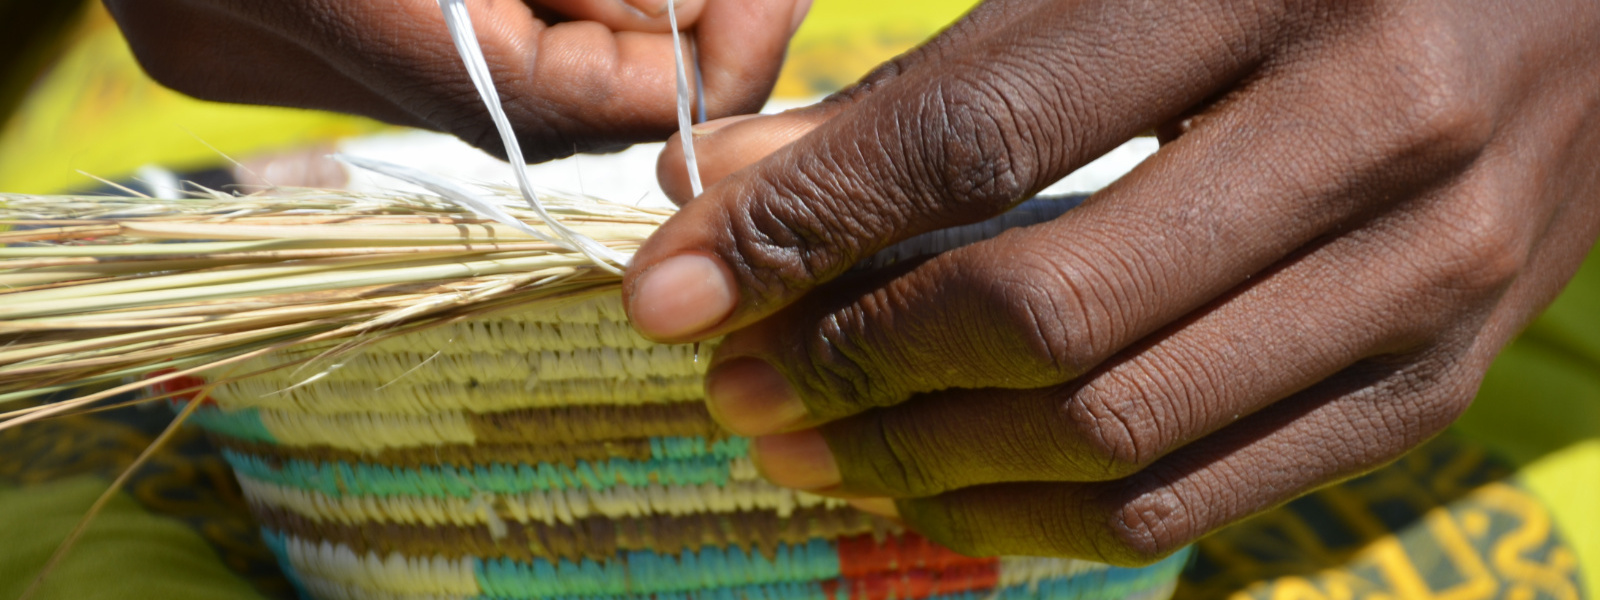 Woman's hand weaving brightly colored basket